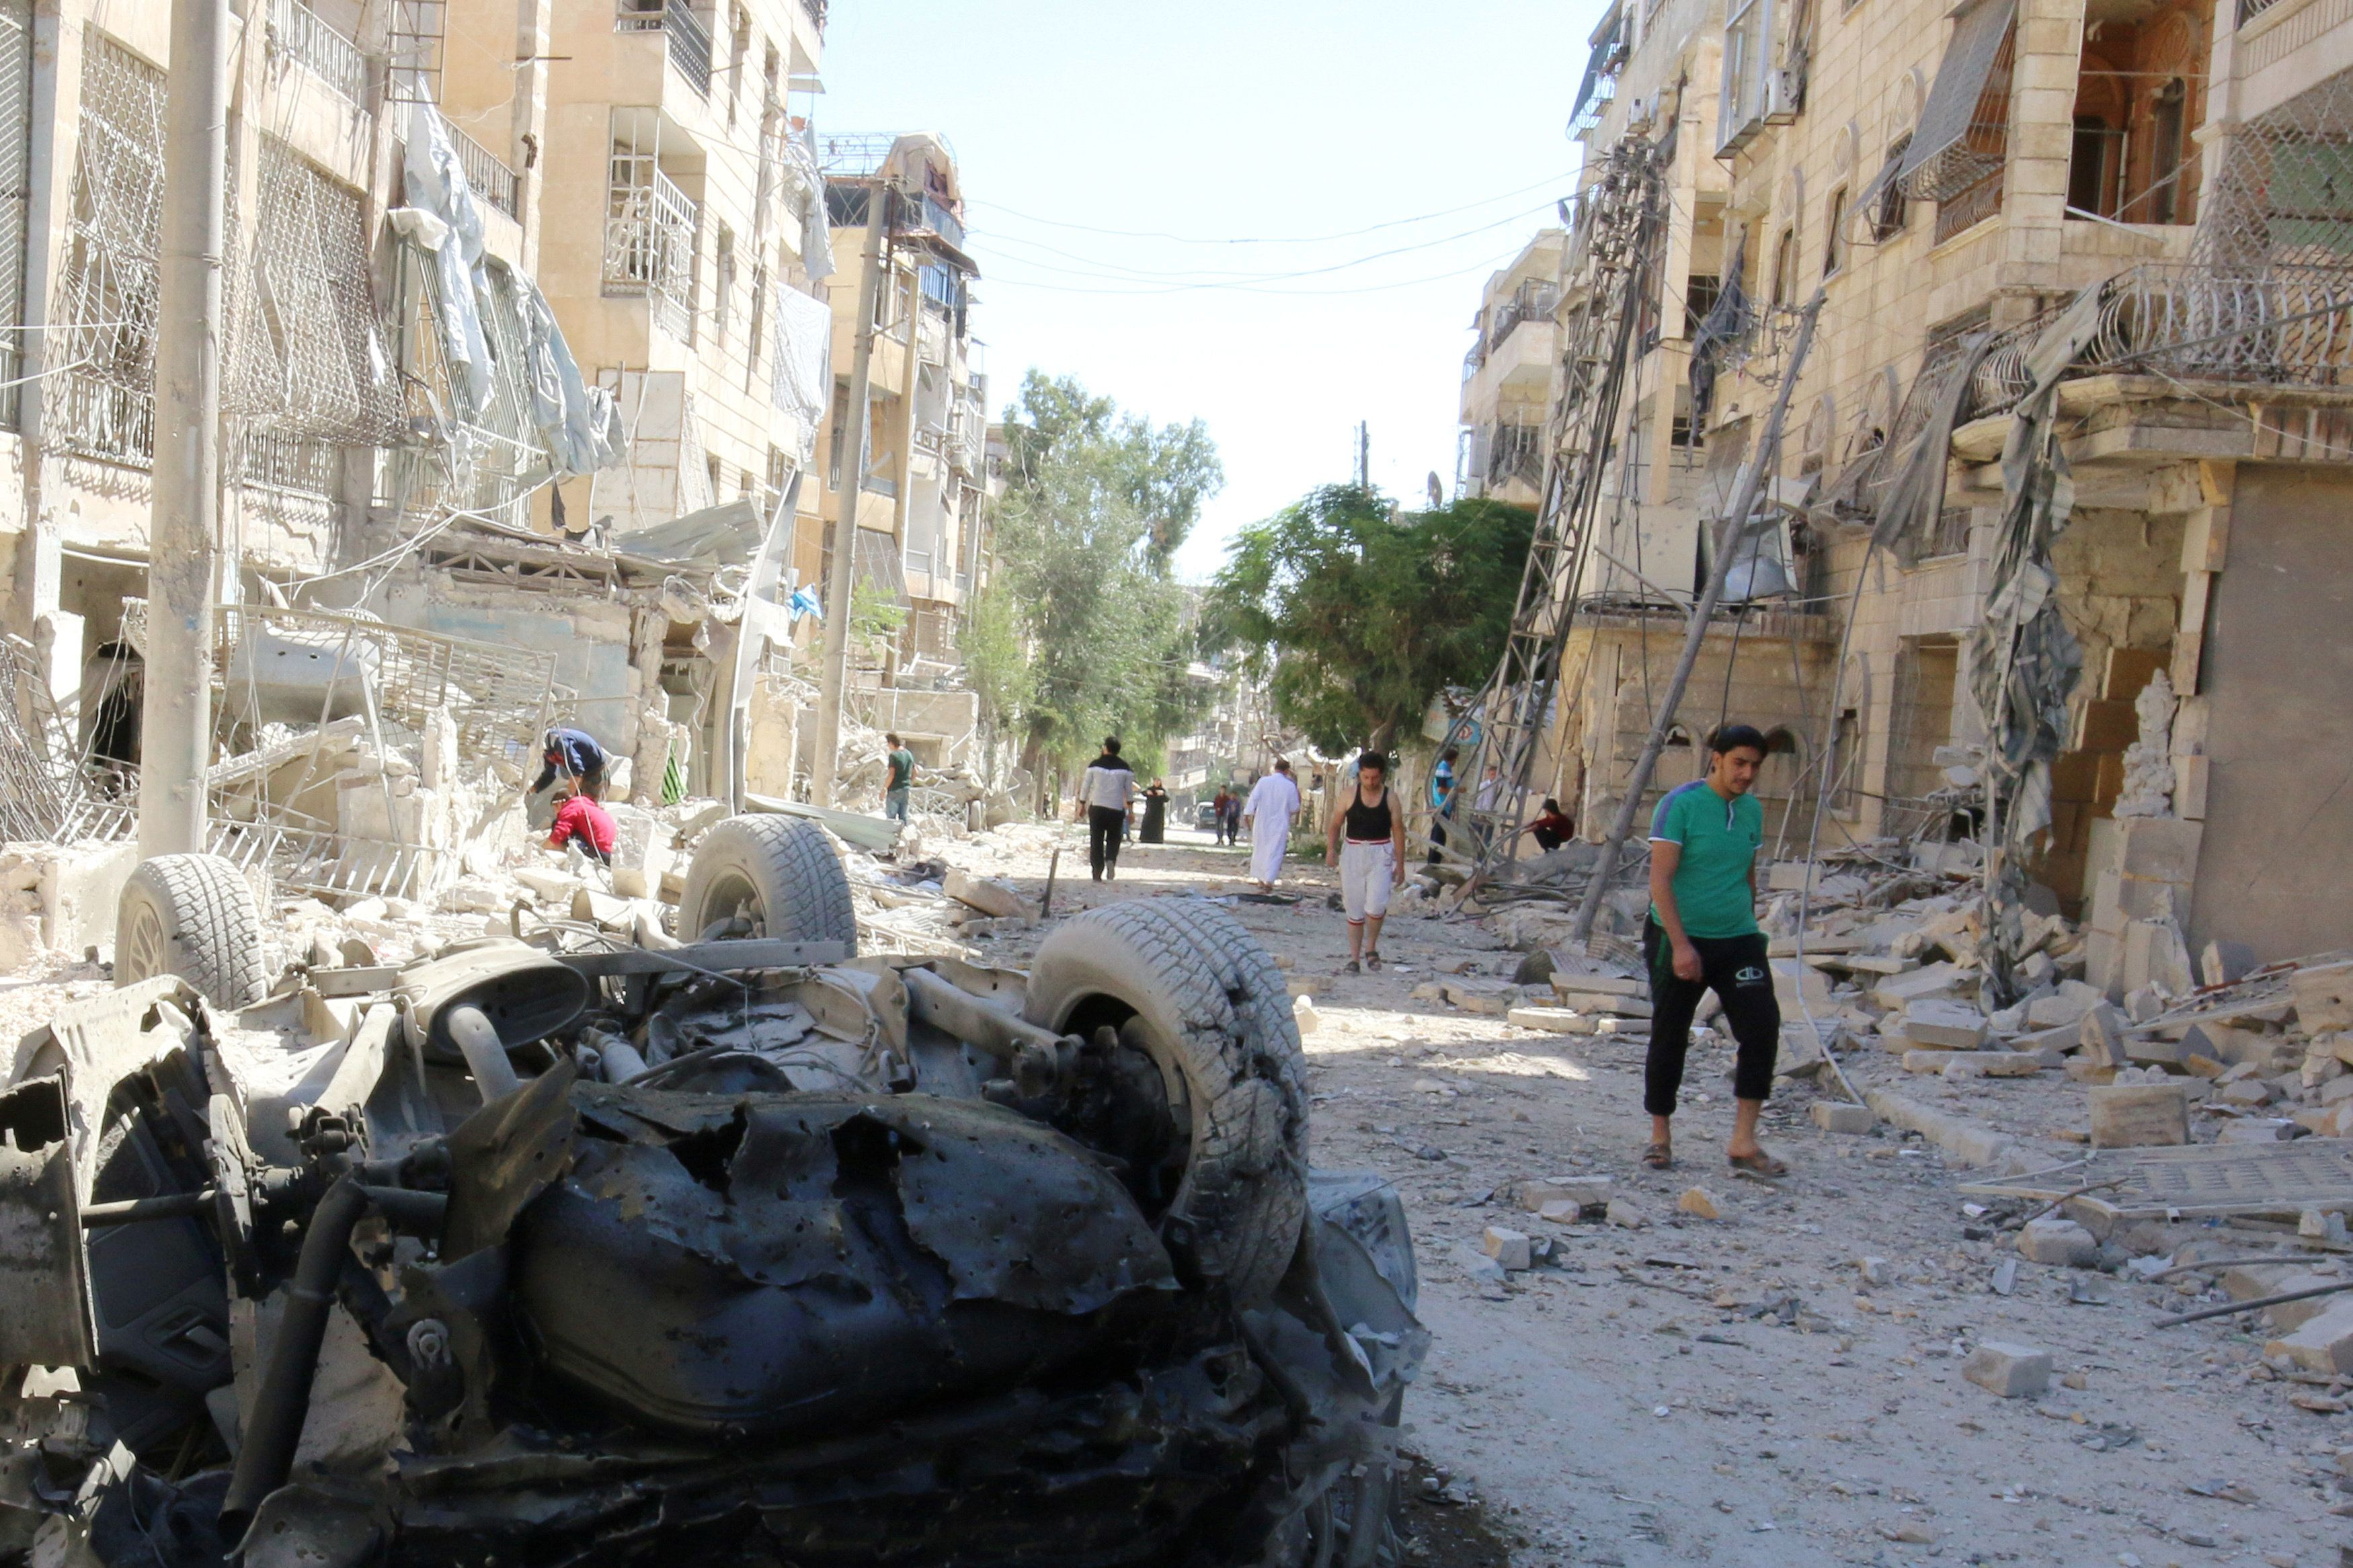 Survivors in the Seif alDawla neighborhood of Aleppo Syria last week